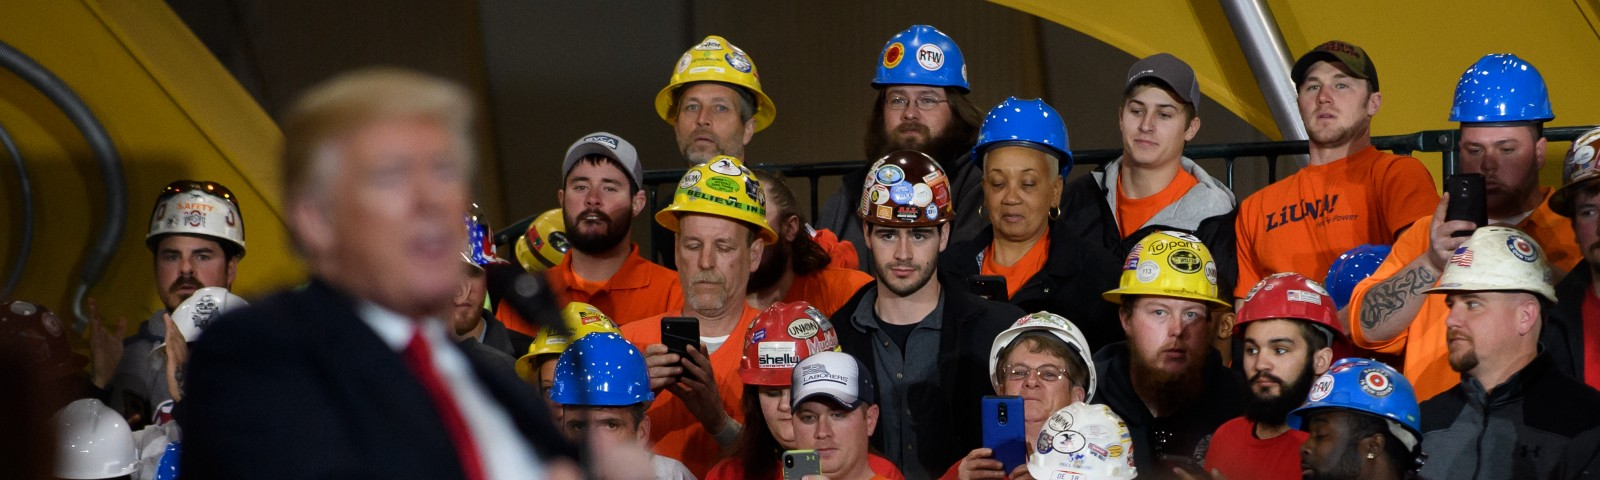 Donald Trump speaks to a crowd gathered at the Local 18 Richfield Facility of the Operating Engineers Apprentice and Training